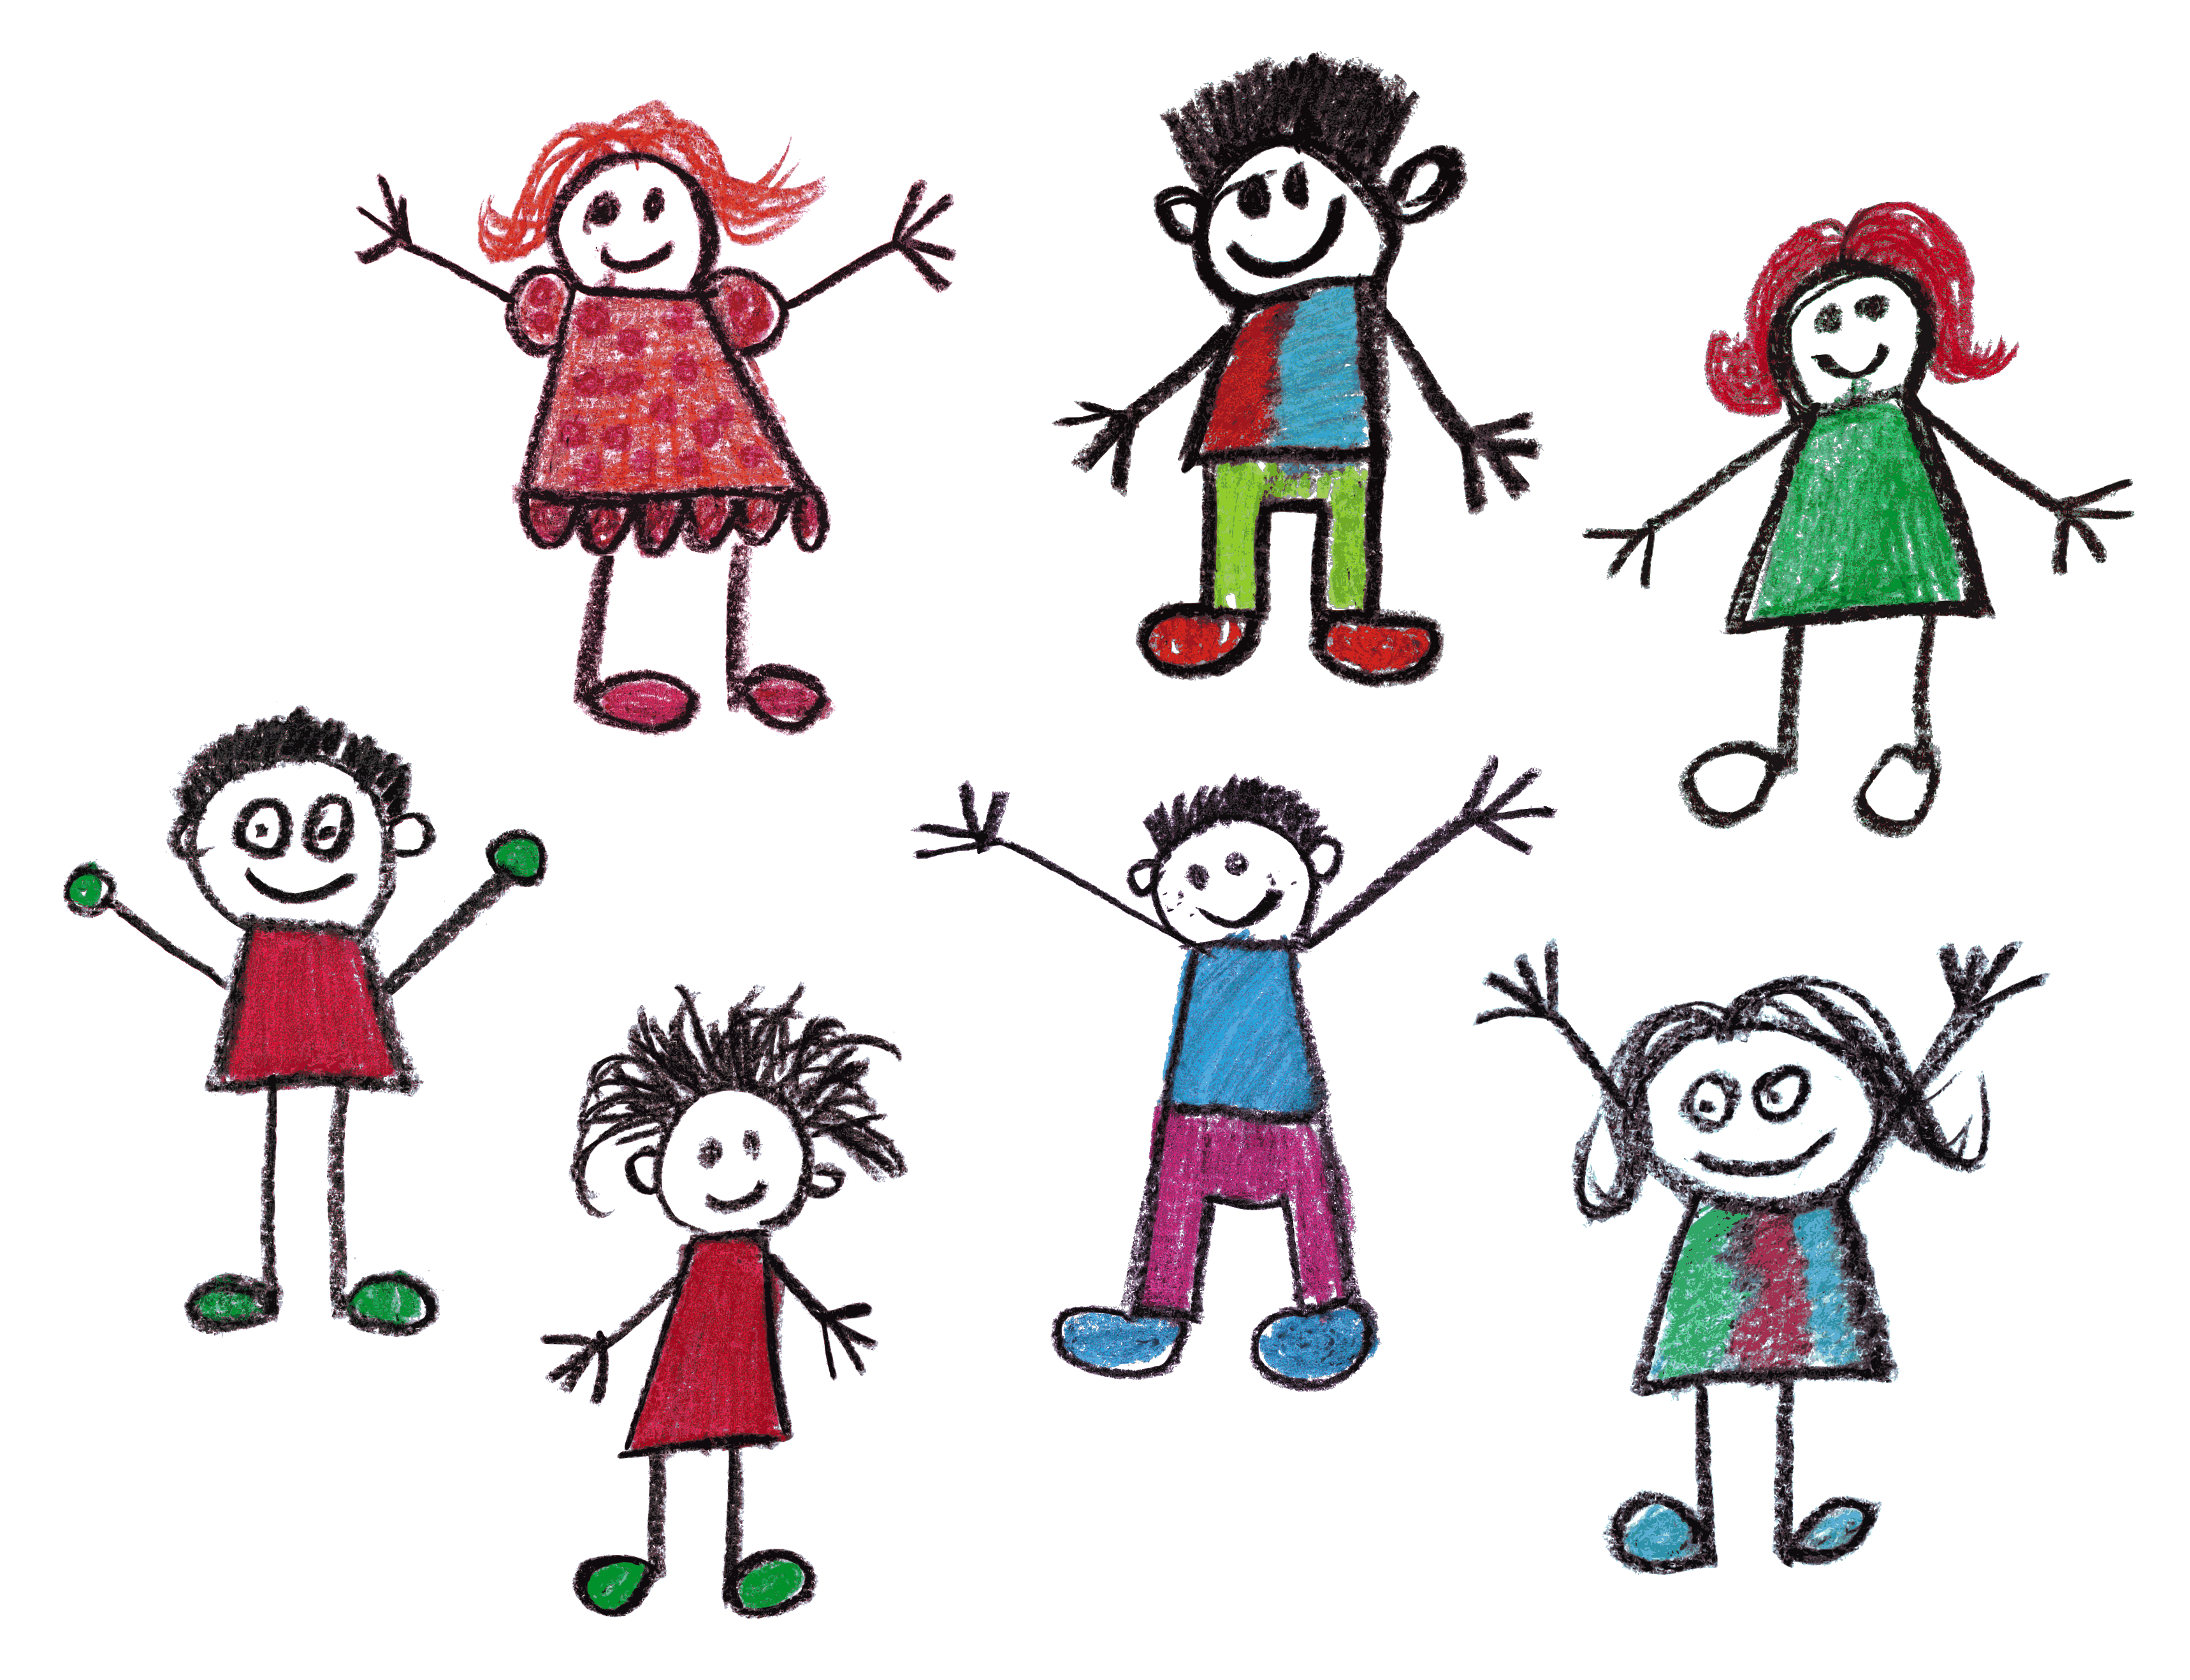 crayon-doodle-happy-kids-drawing-cover.jpg